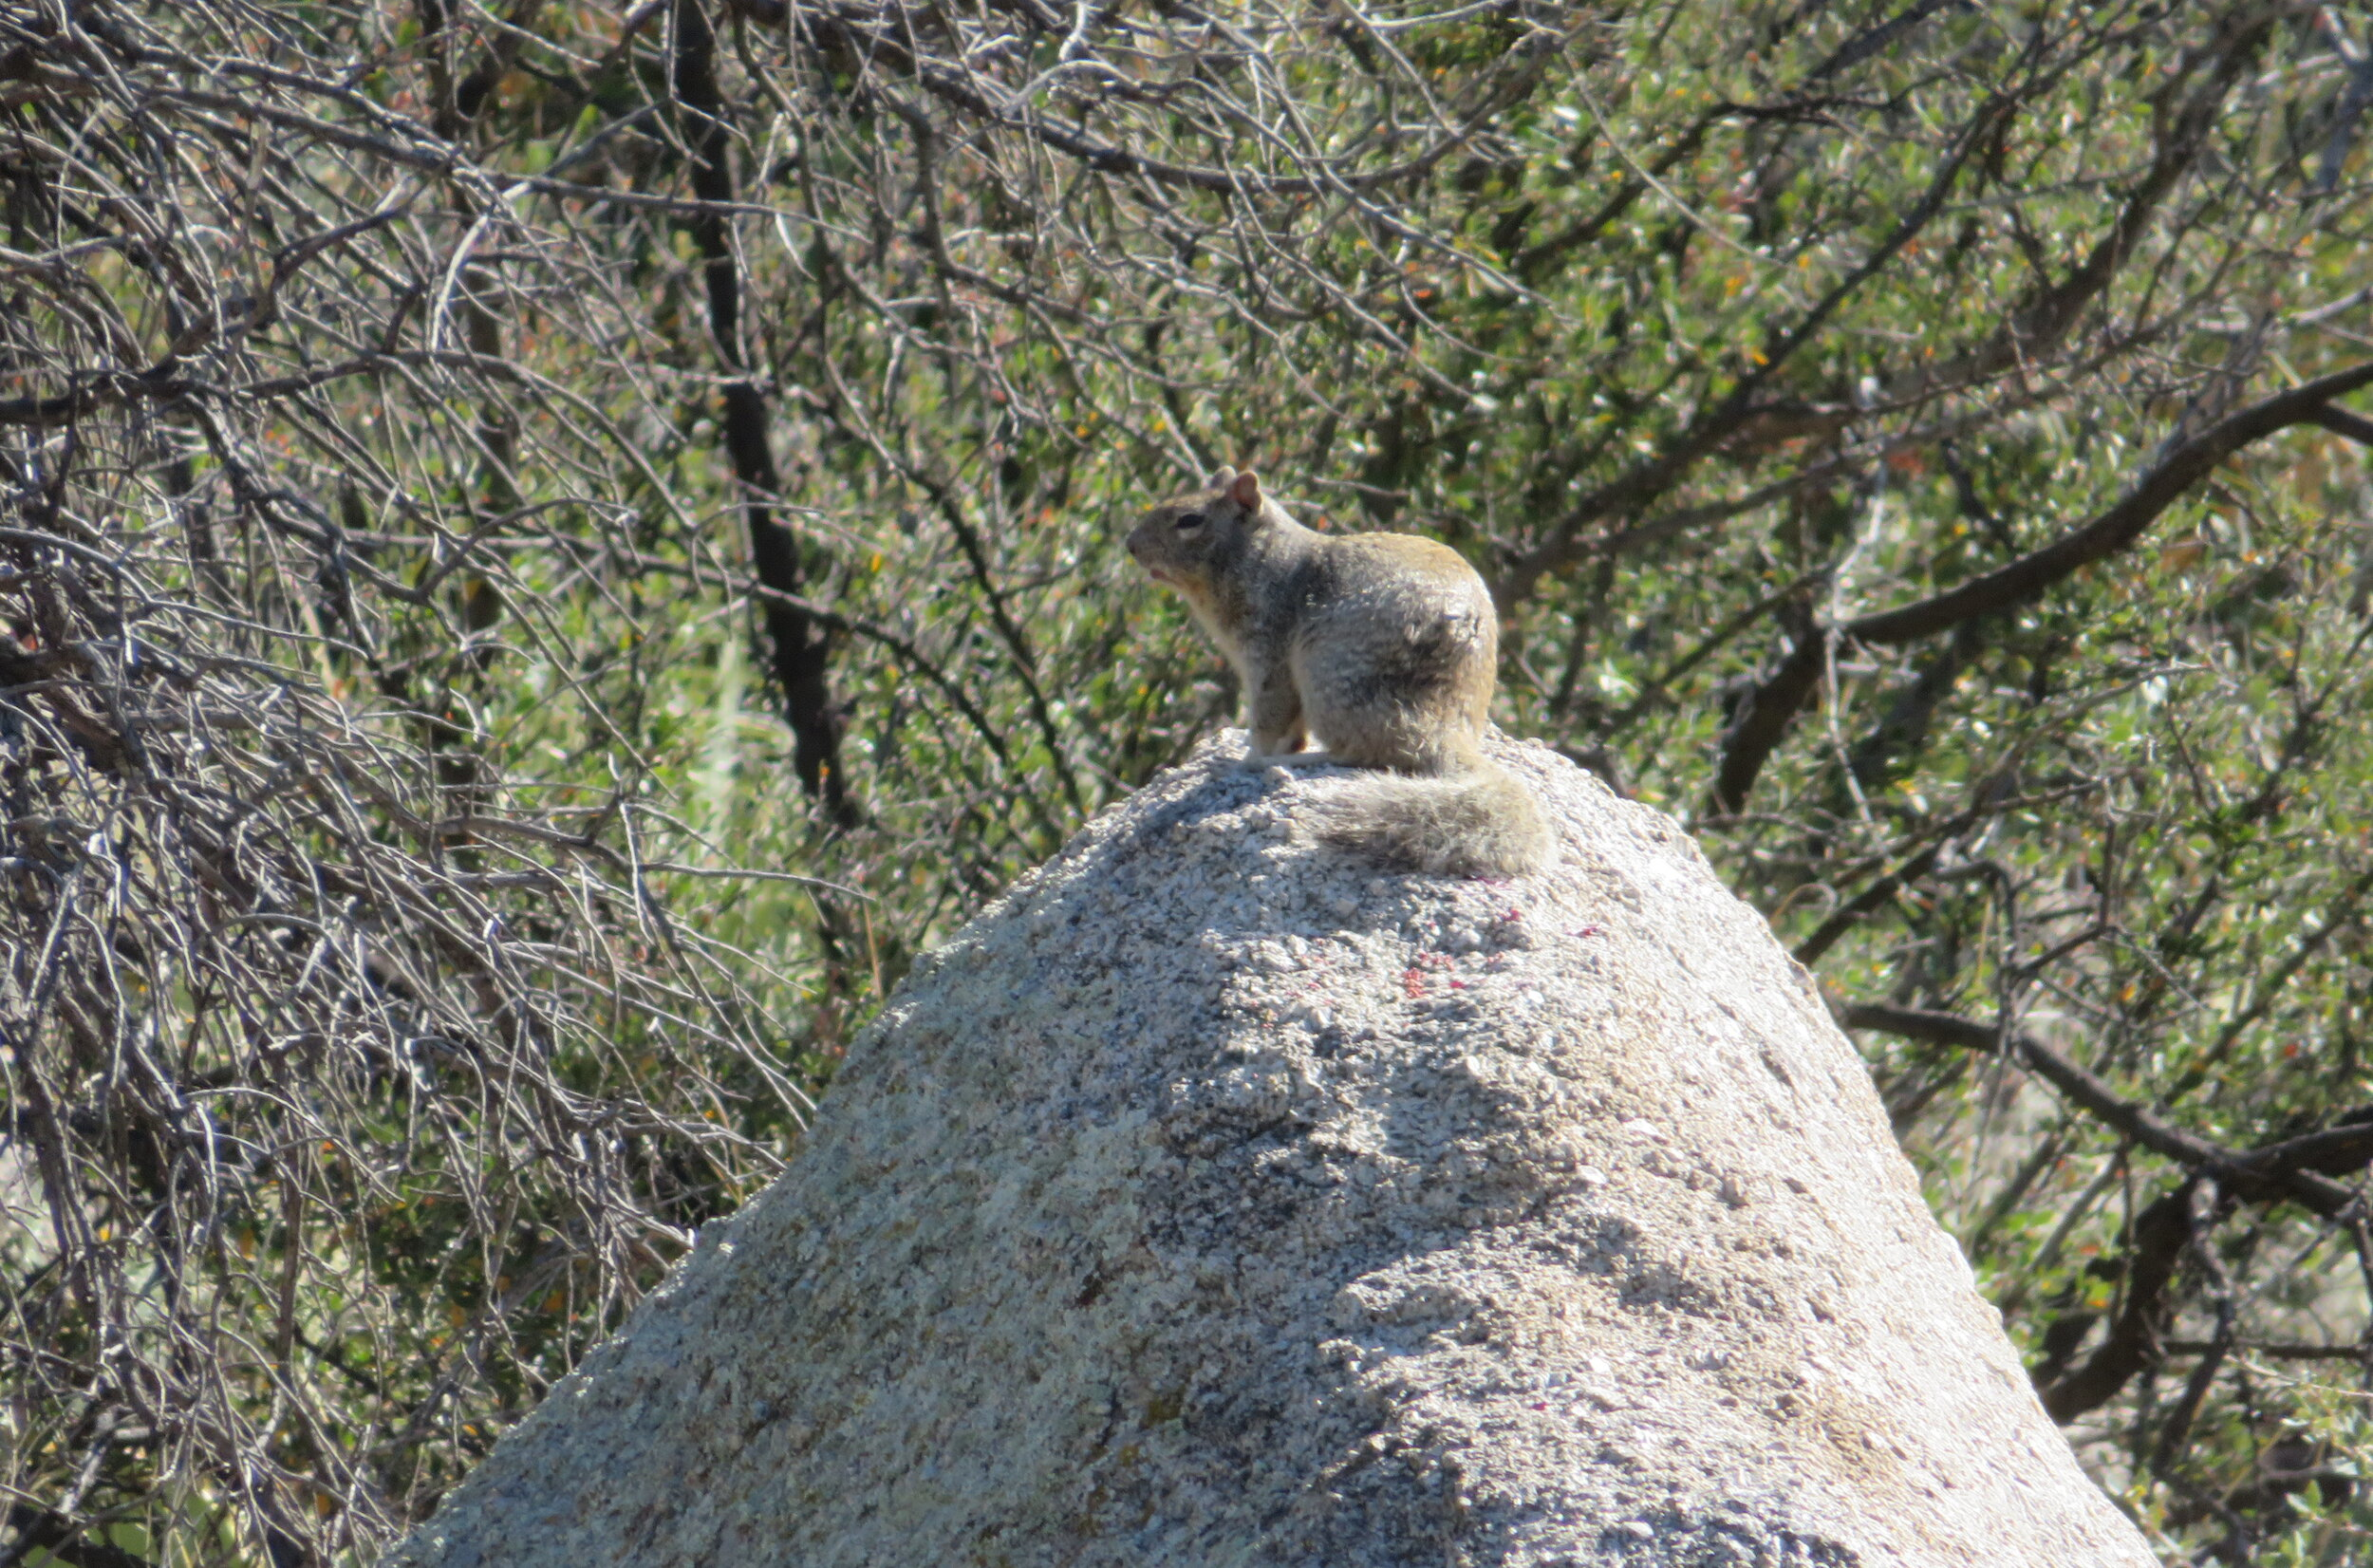 A rock squirrel gives us an earful.